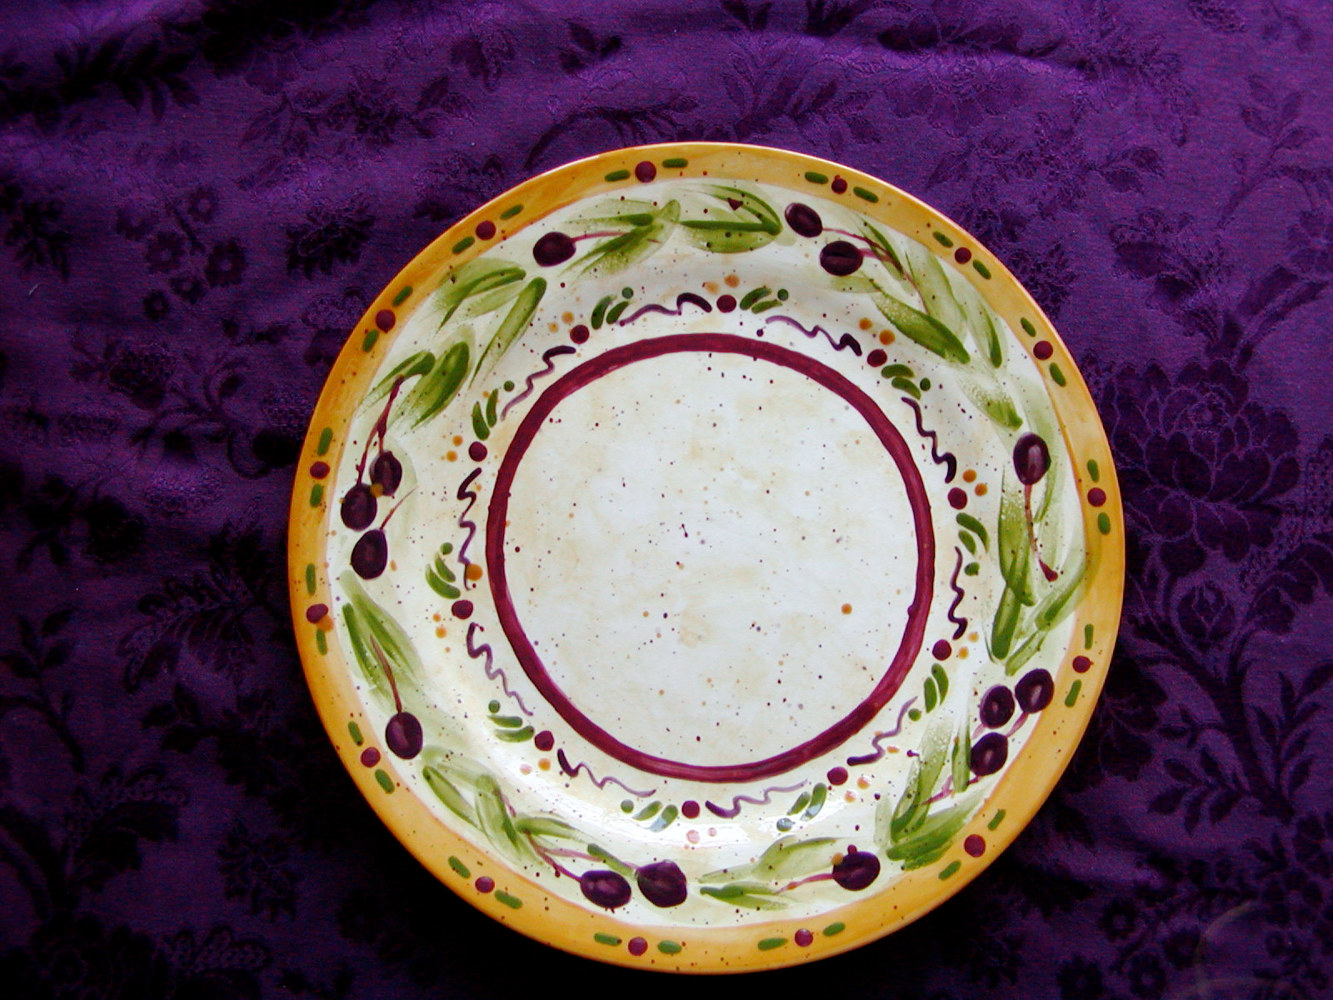 Painting Italianate Eclectic Glazeworks: Dinner Plate Design 1 by Linnie (Victoria) Aikens Lindsay